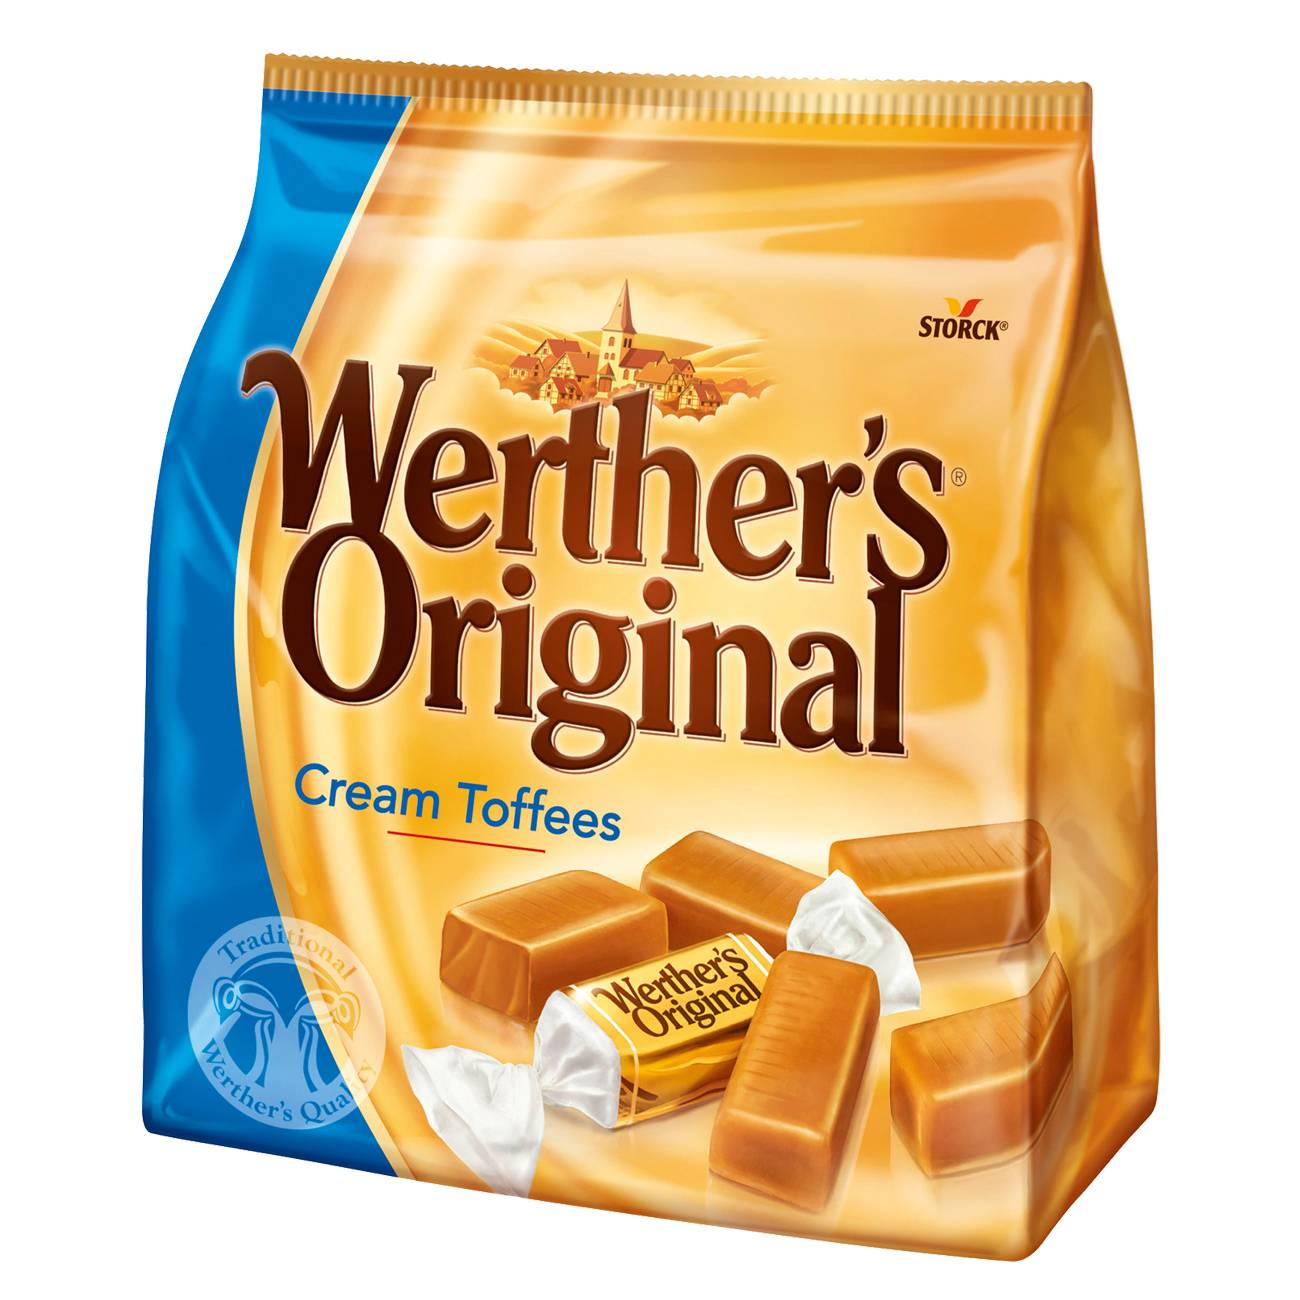 ORIGINAL CREAM TOFFEES 200 G